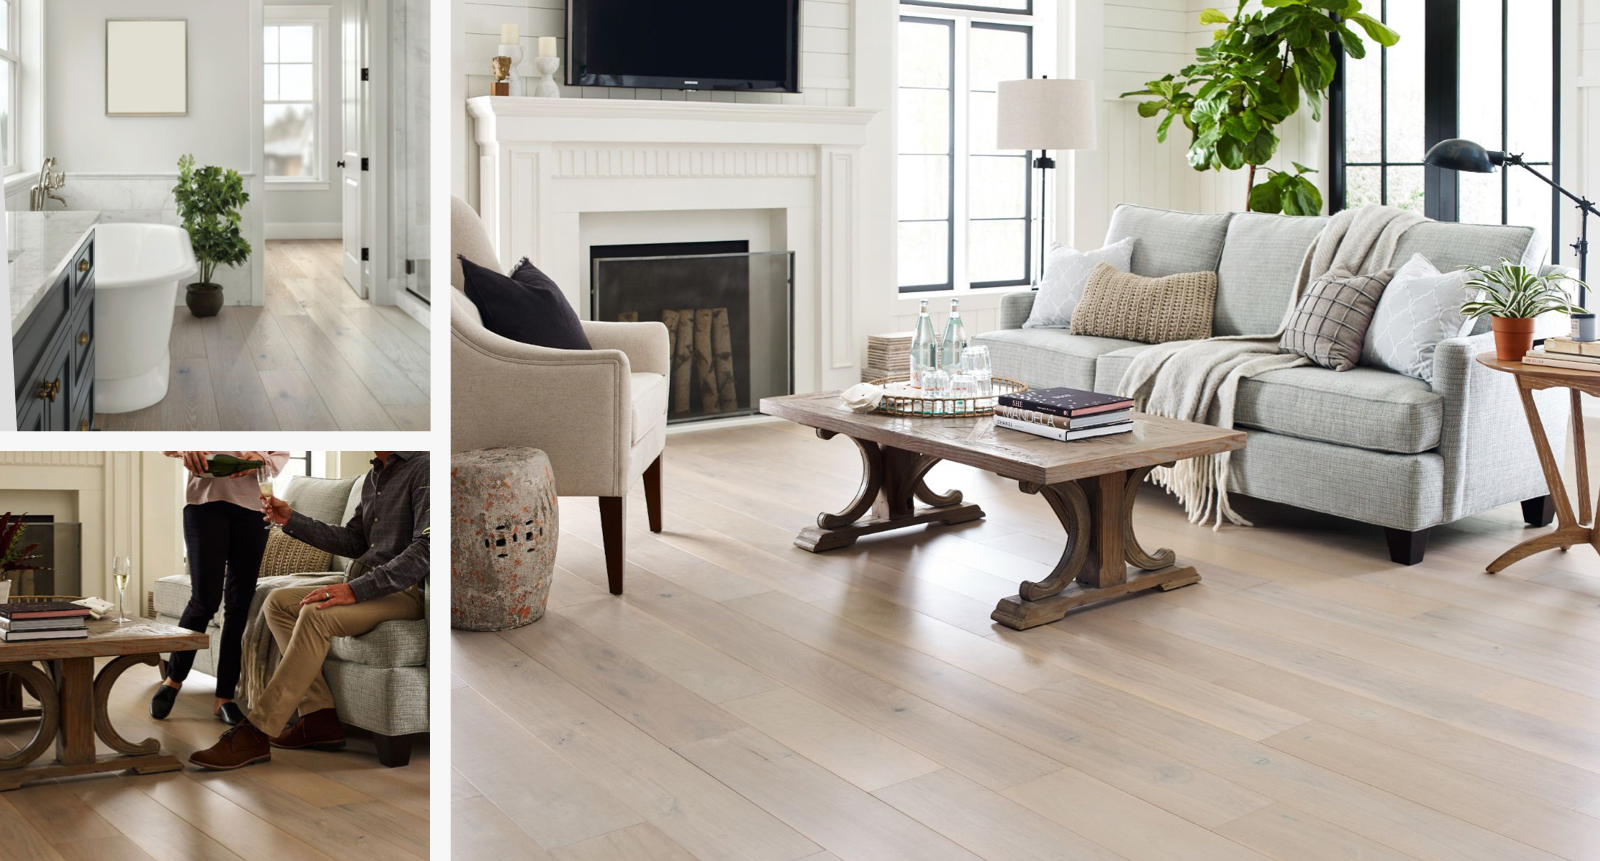 Floorte waterproof hardwood flooring for your home | Direct Carpet Unlimited